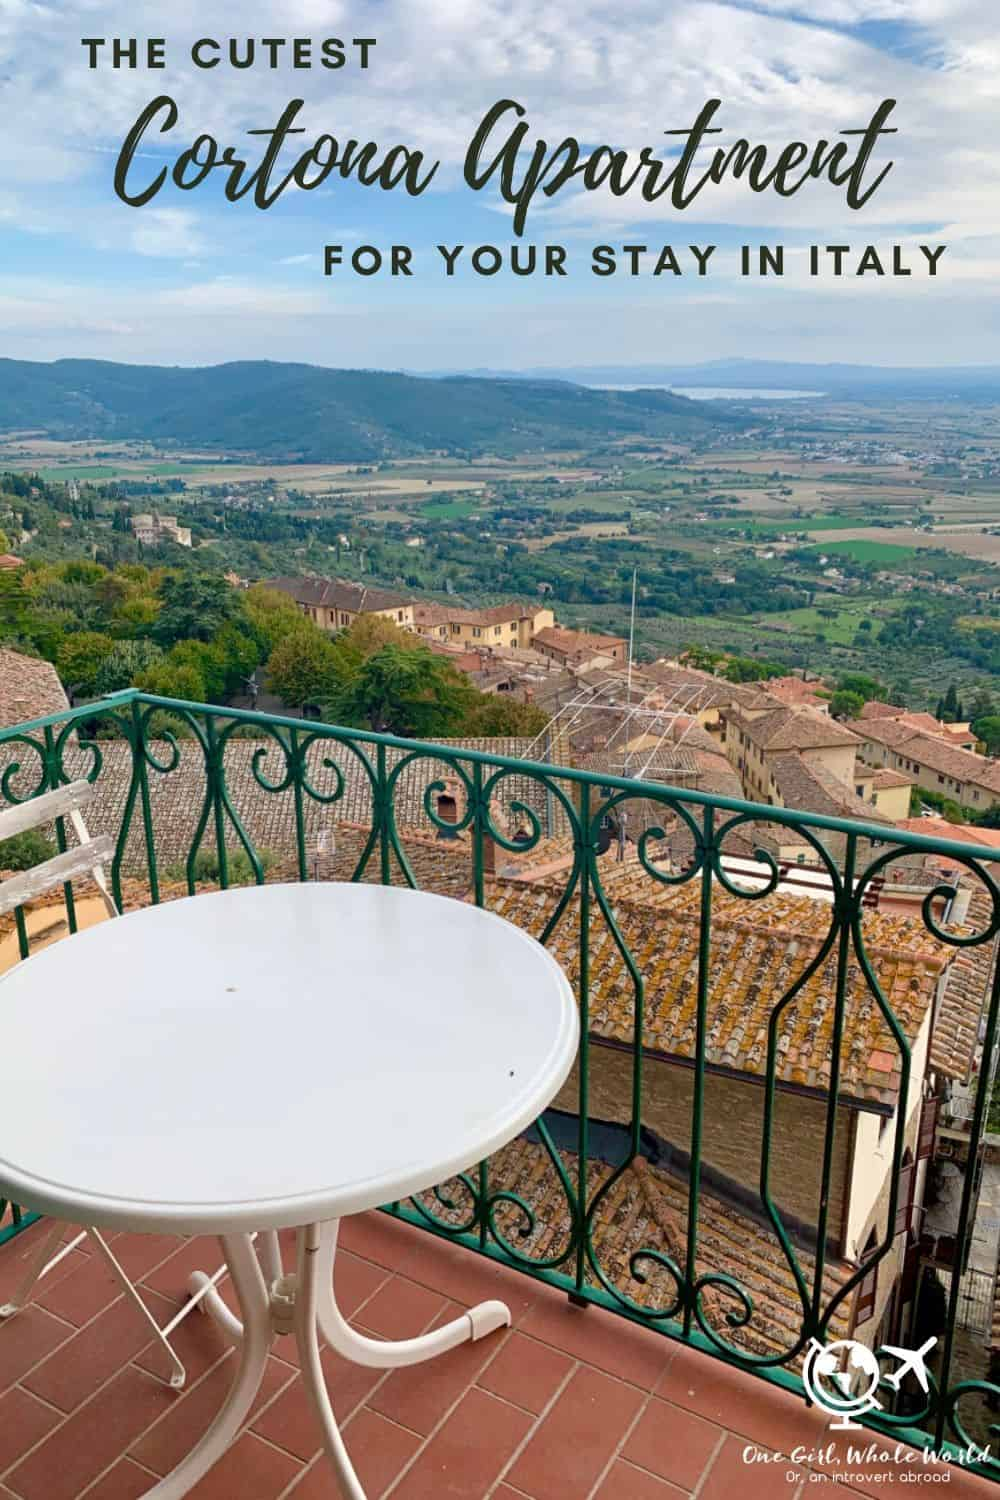 The Cutest Cortona Apartment to Rent | This is the perfect Airbnb for your stay in Cortona, Italy...amazing views, so charming, perfect for a short stay or weeks in Cortona! If you're wondering where to stay in Cortona or which Tuscan hill town to visit, I've got your back. #cortona #italy #airbnb